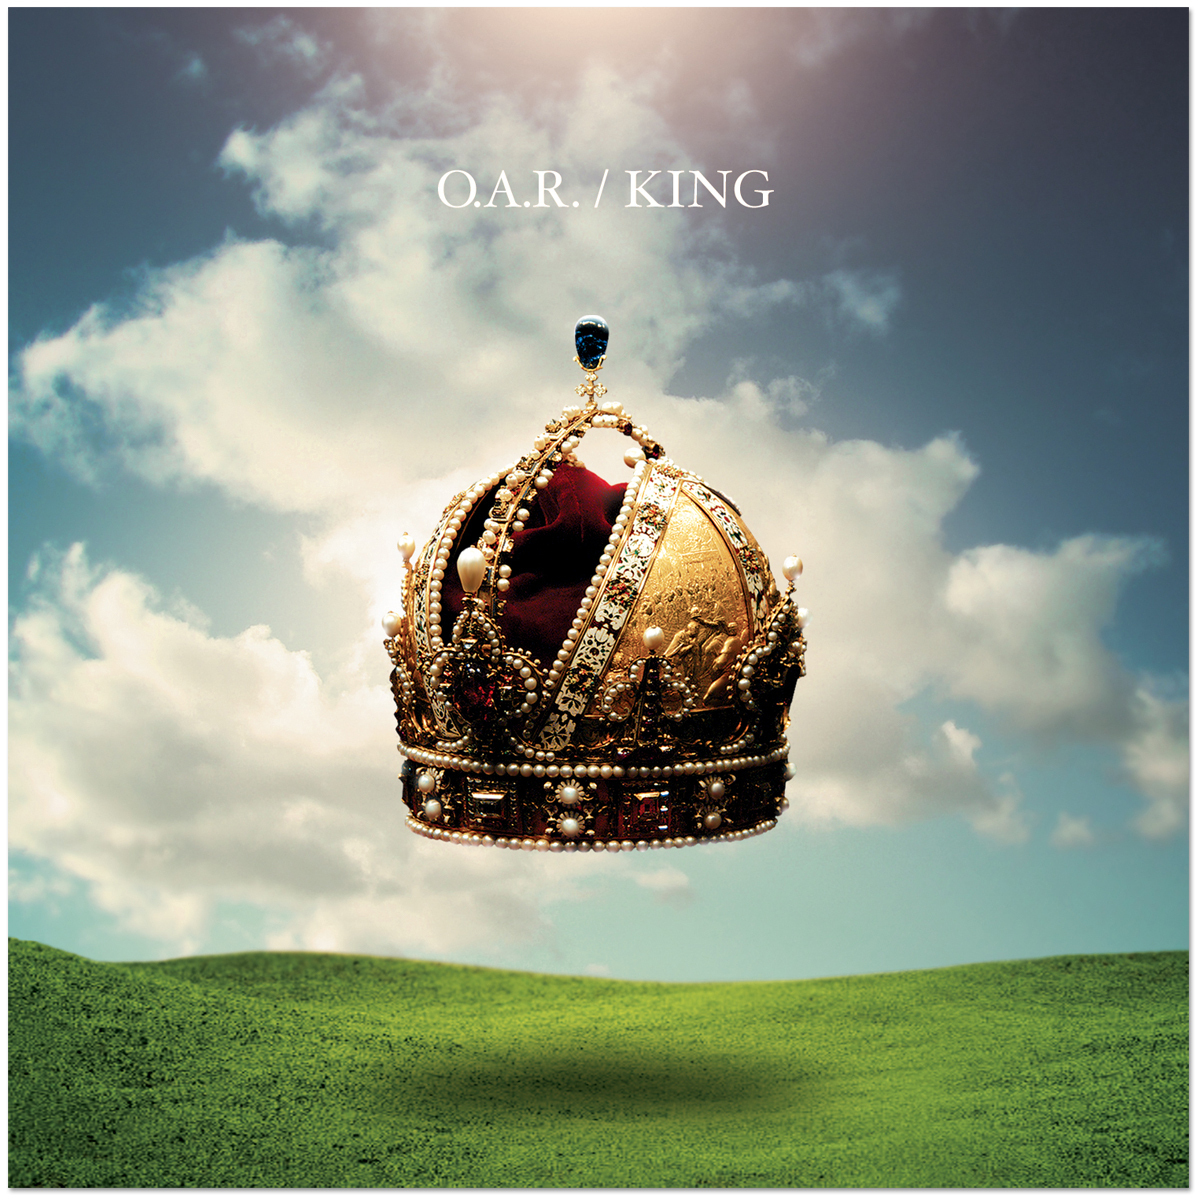 O.A.R. King Deluxe Digital Download